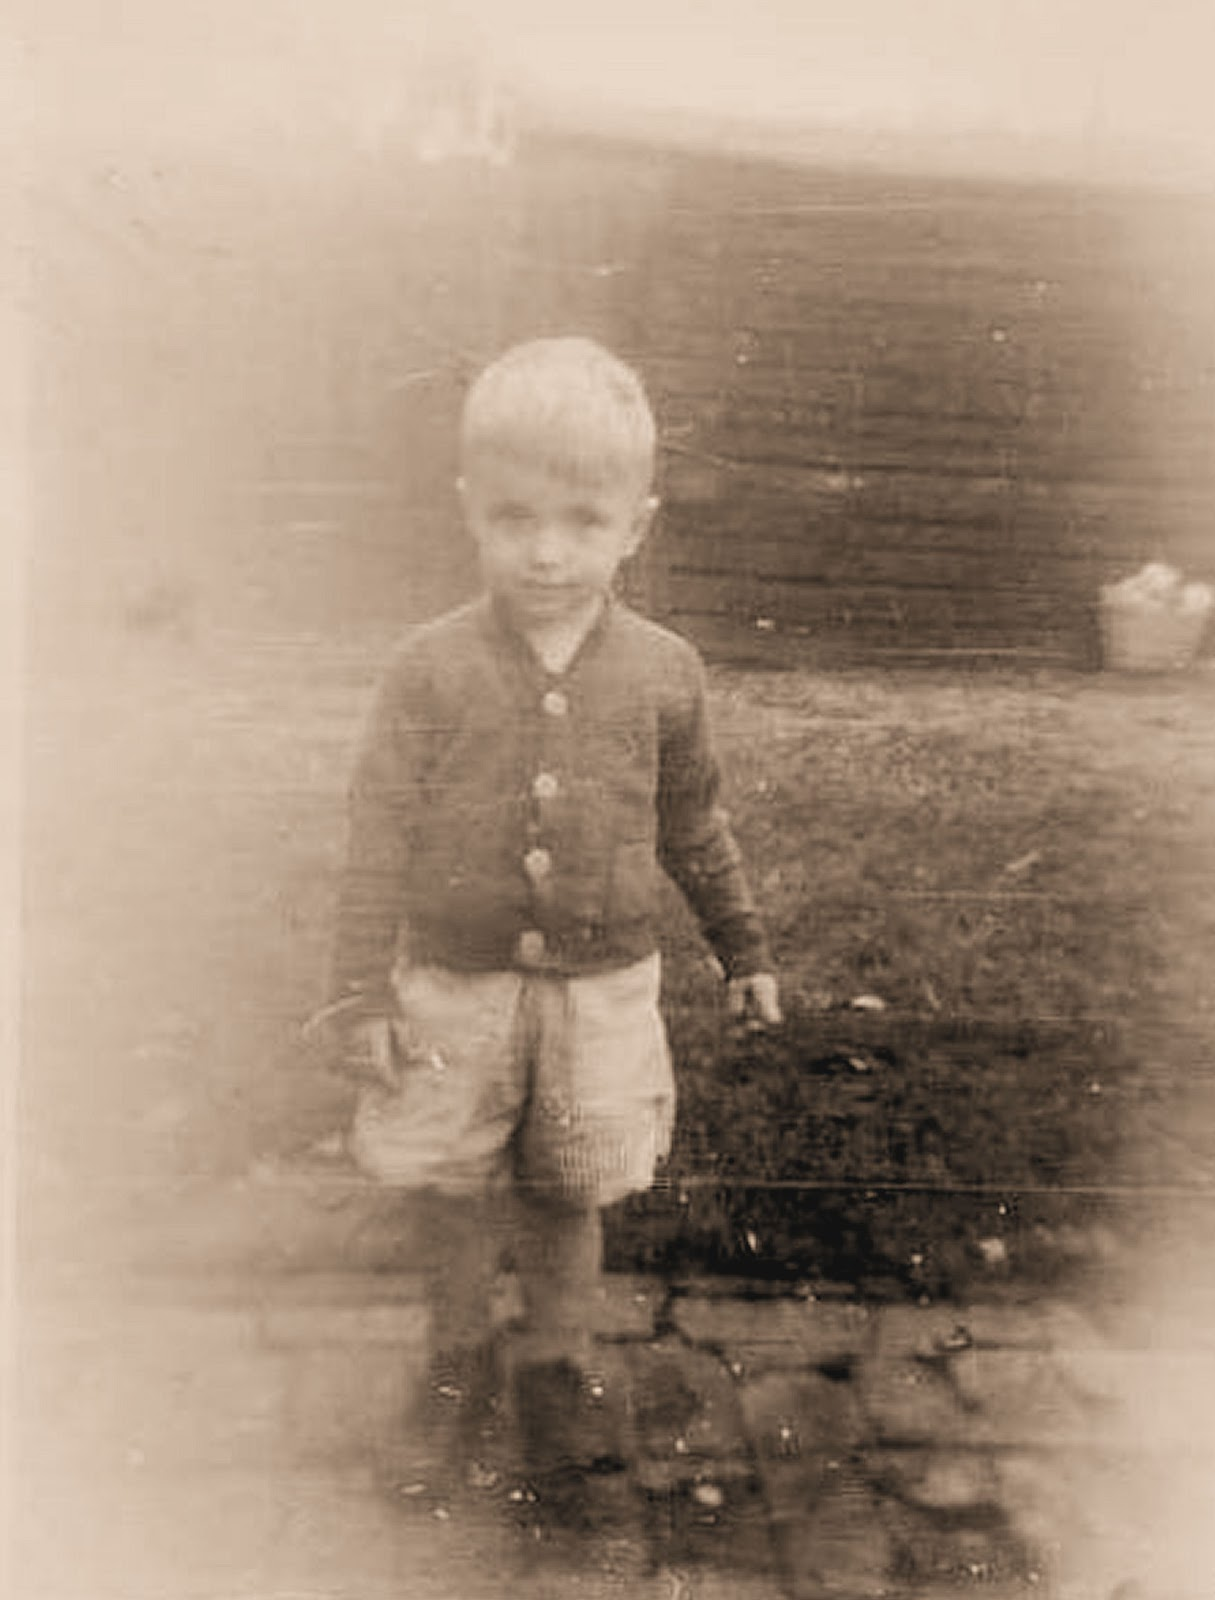 How cute is this little guy?! This is a found vintage, black and white  photo that I edited, giving it a slight sepia tone.